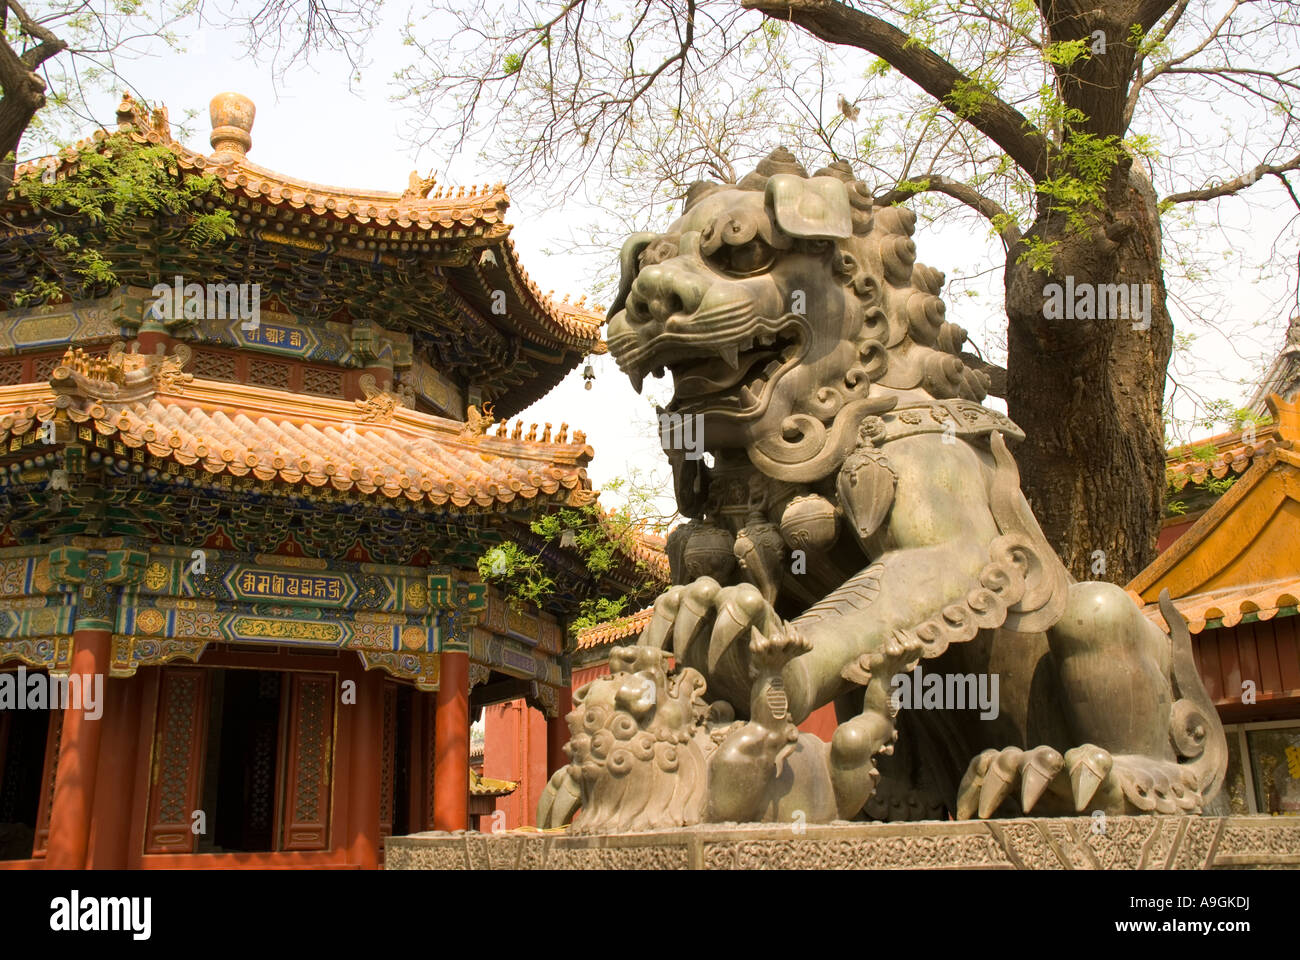 Imperial lion with cub guarding entrance to the Lama Temple (Yonghe Gong) Beijing - Stock Image